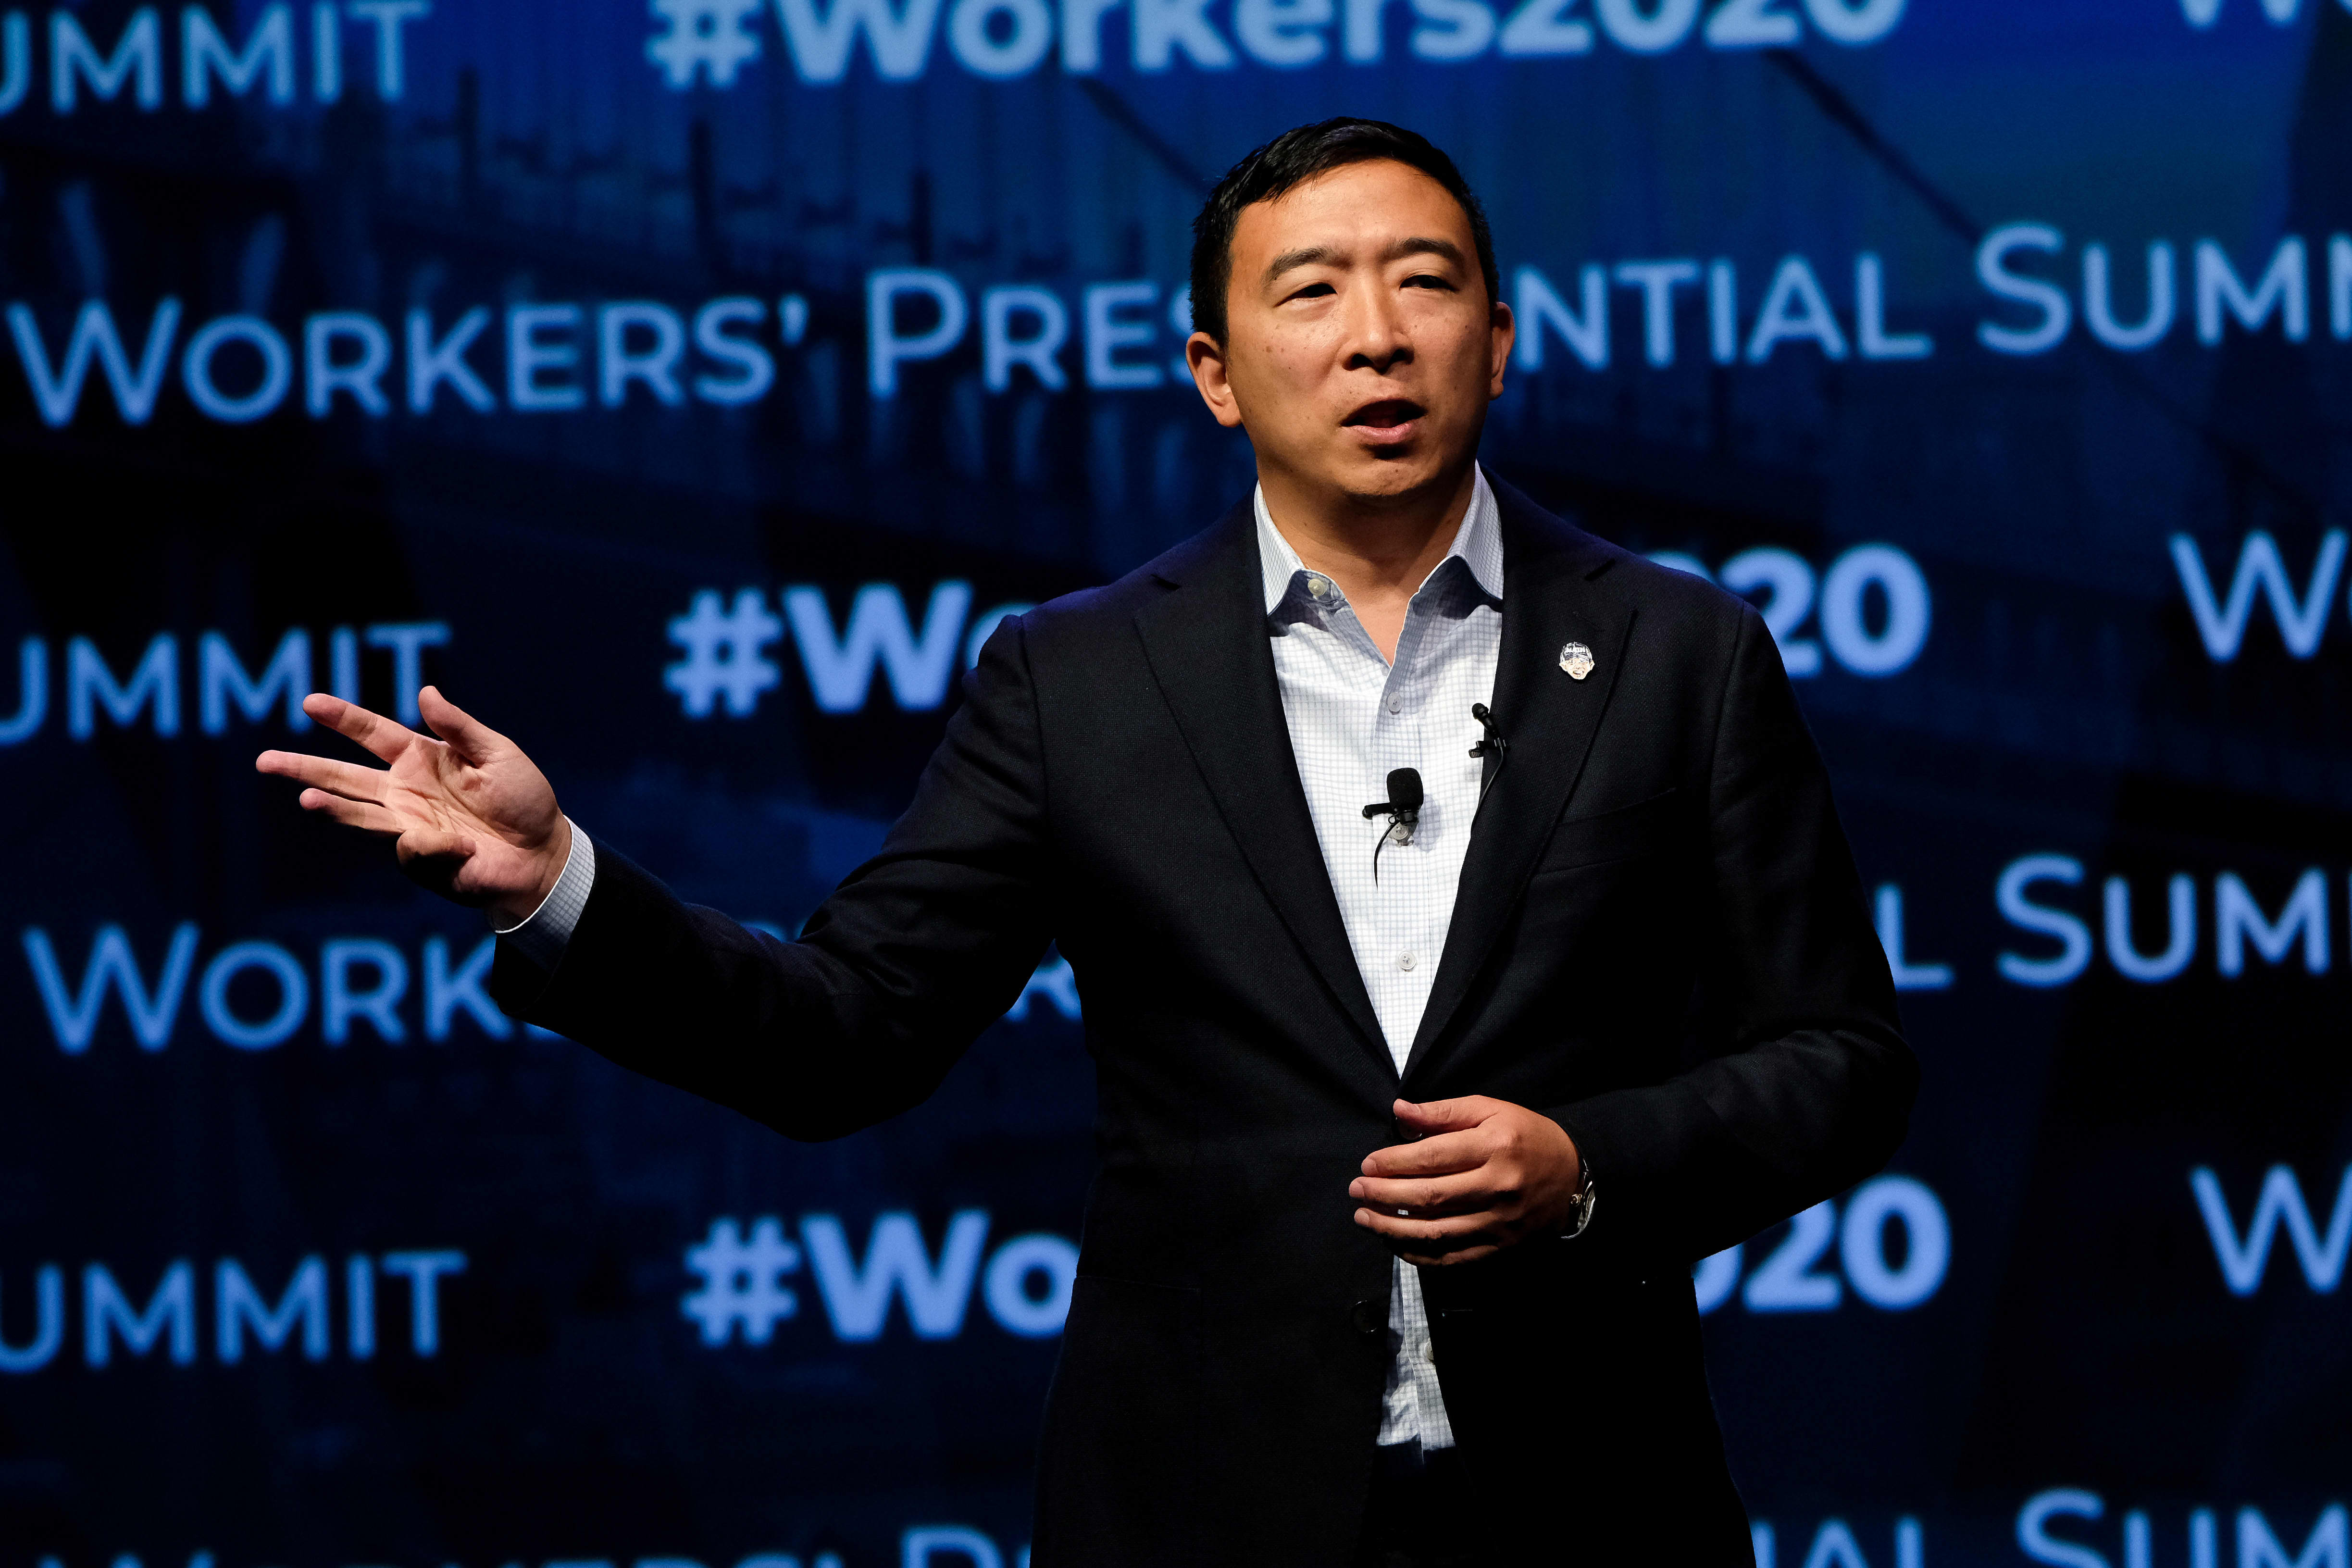 Andrew Yang's staff become latest campaign workers to unionize